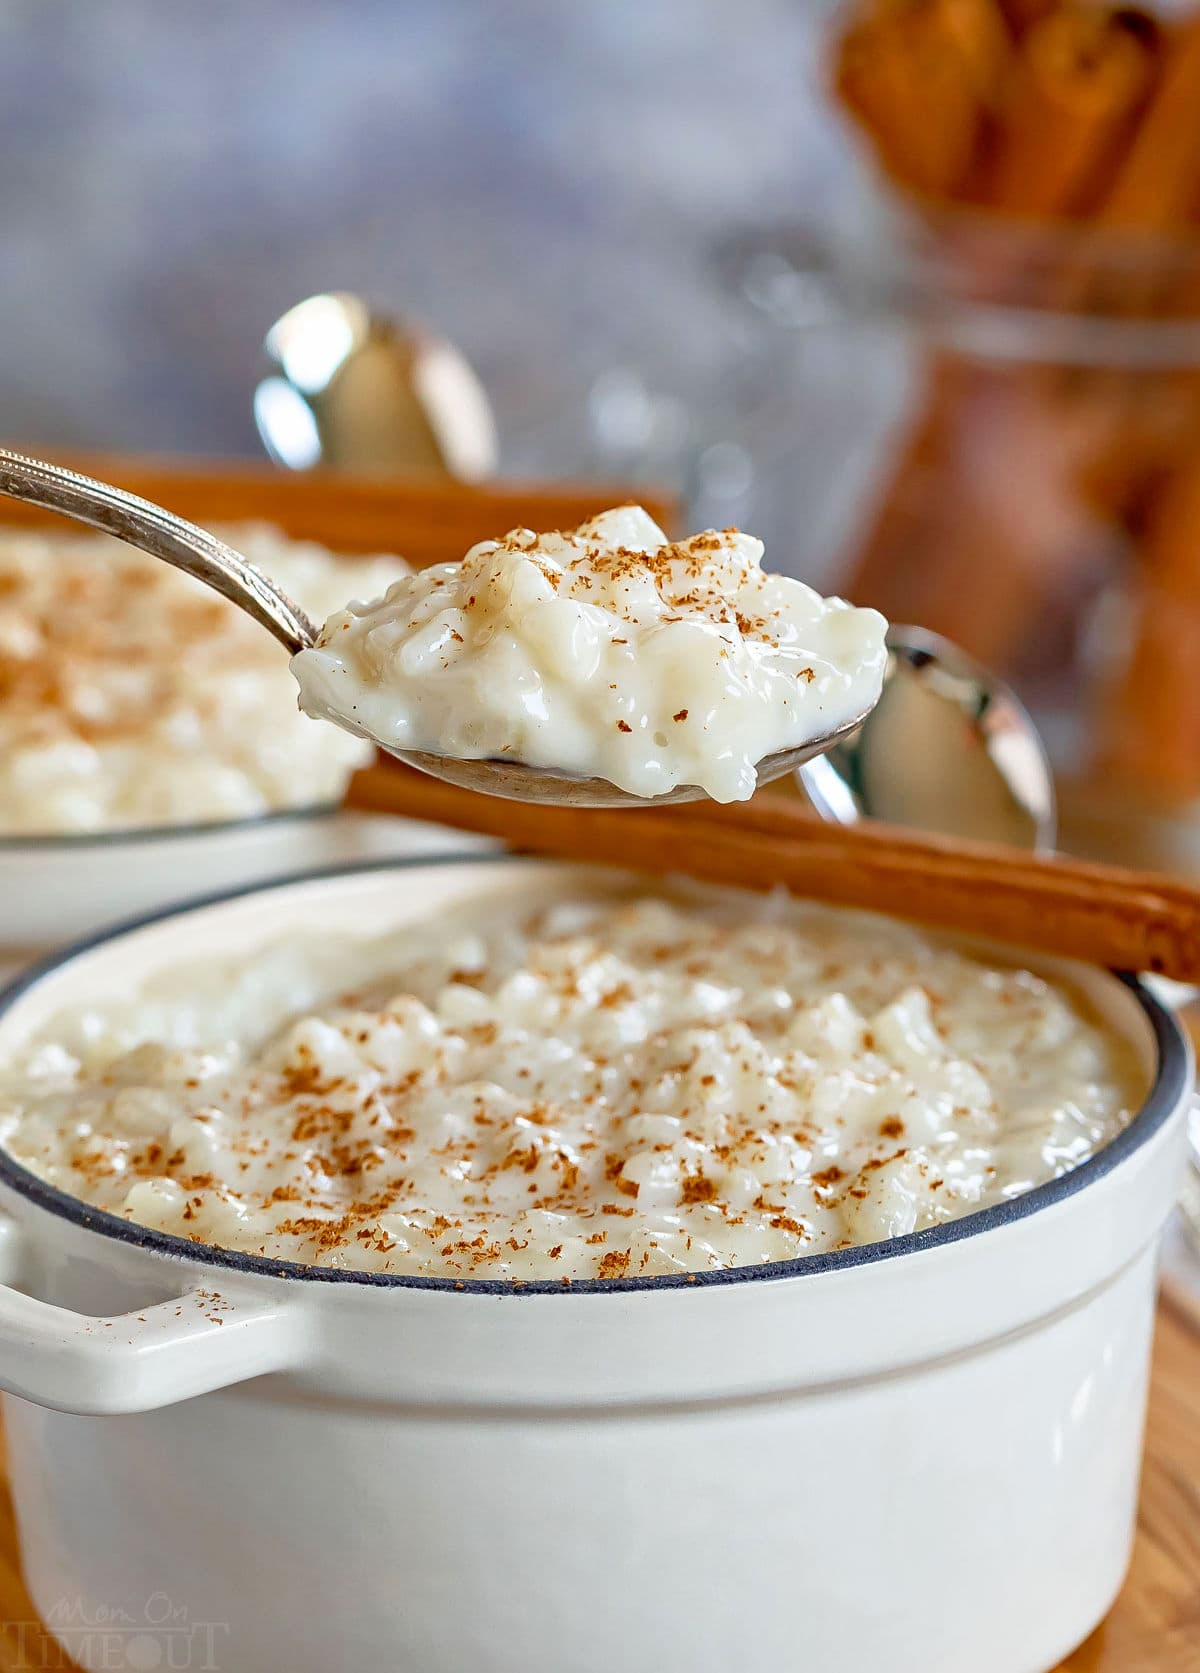 spoonful of rice pudding held up over the white pot it is being served from with freshly grated cinnamon stick on top.